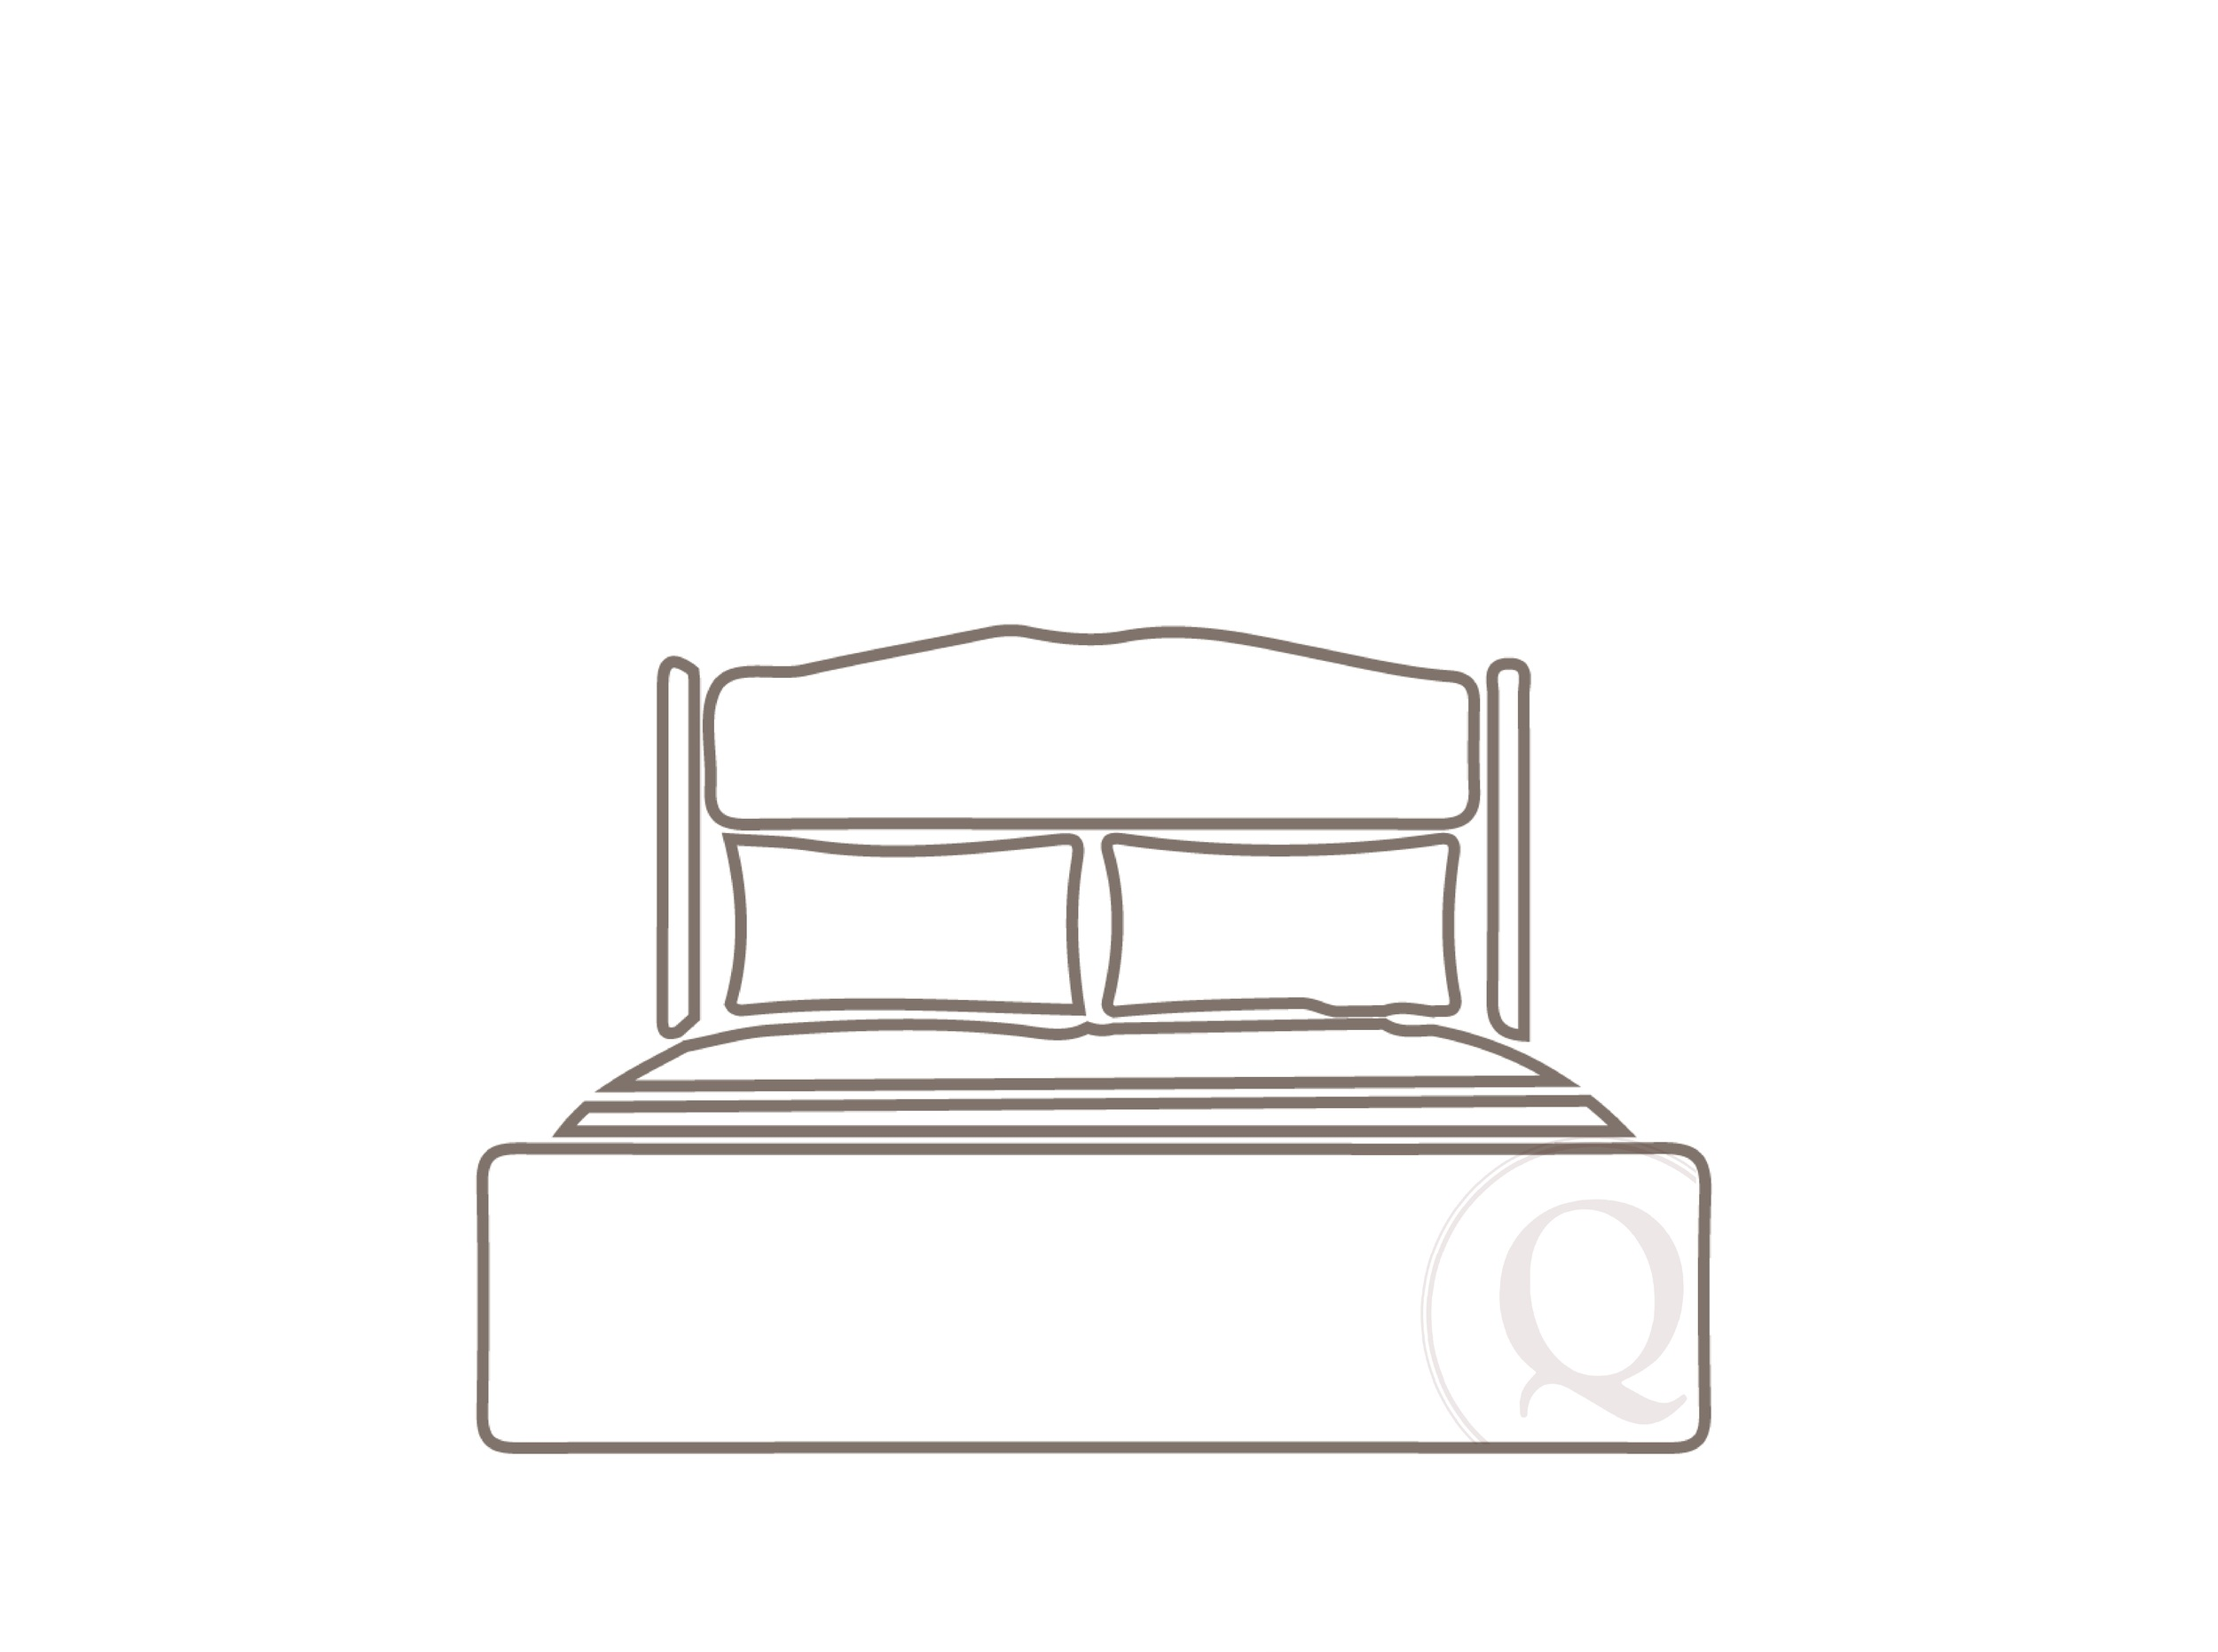 Bed+Icon-13-01.jpg